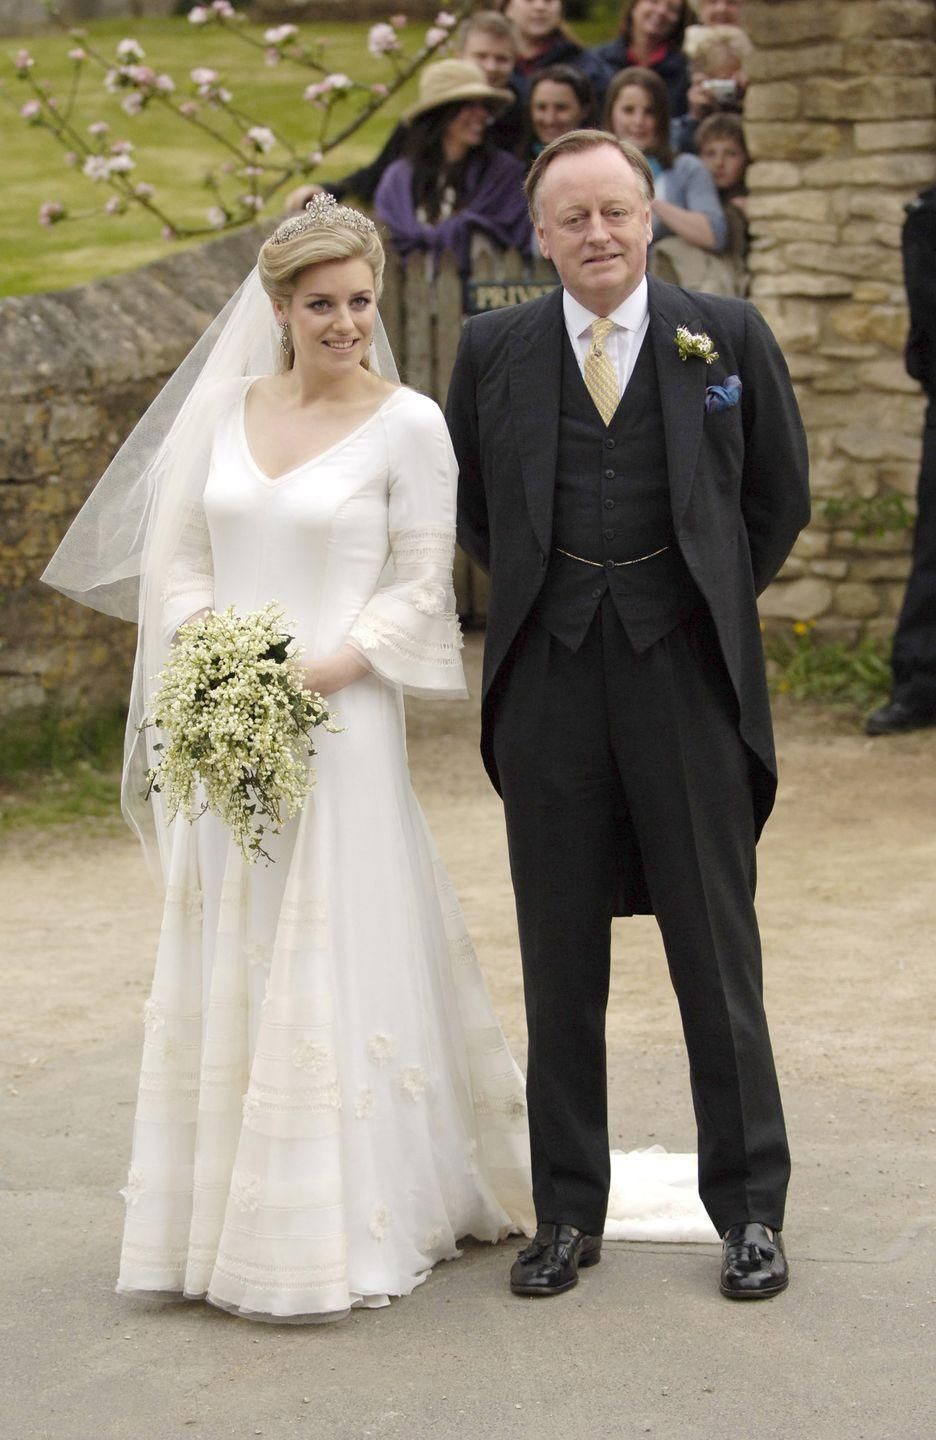 <p>Parker Bowles chose a v-neck gown with bell sleeves and floral details for her wedding to Harry Lopes.</p>